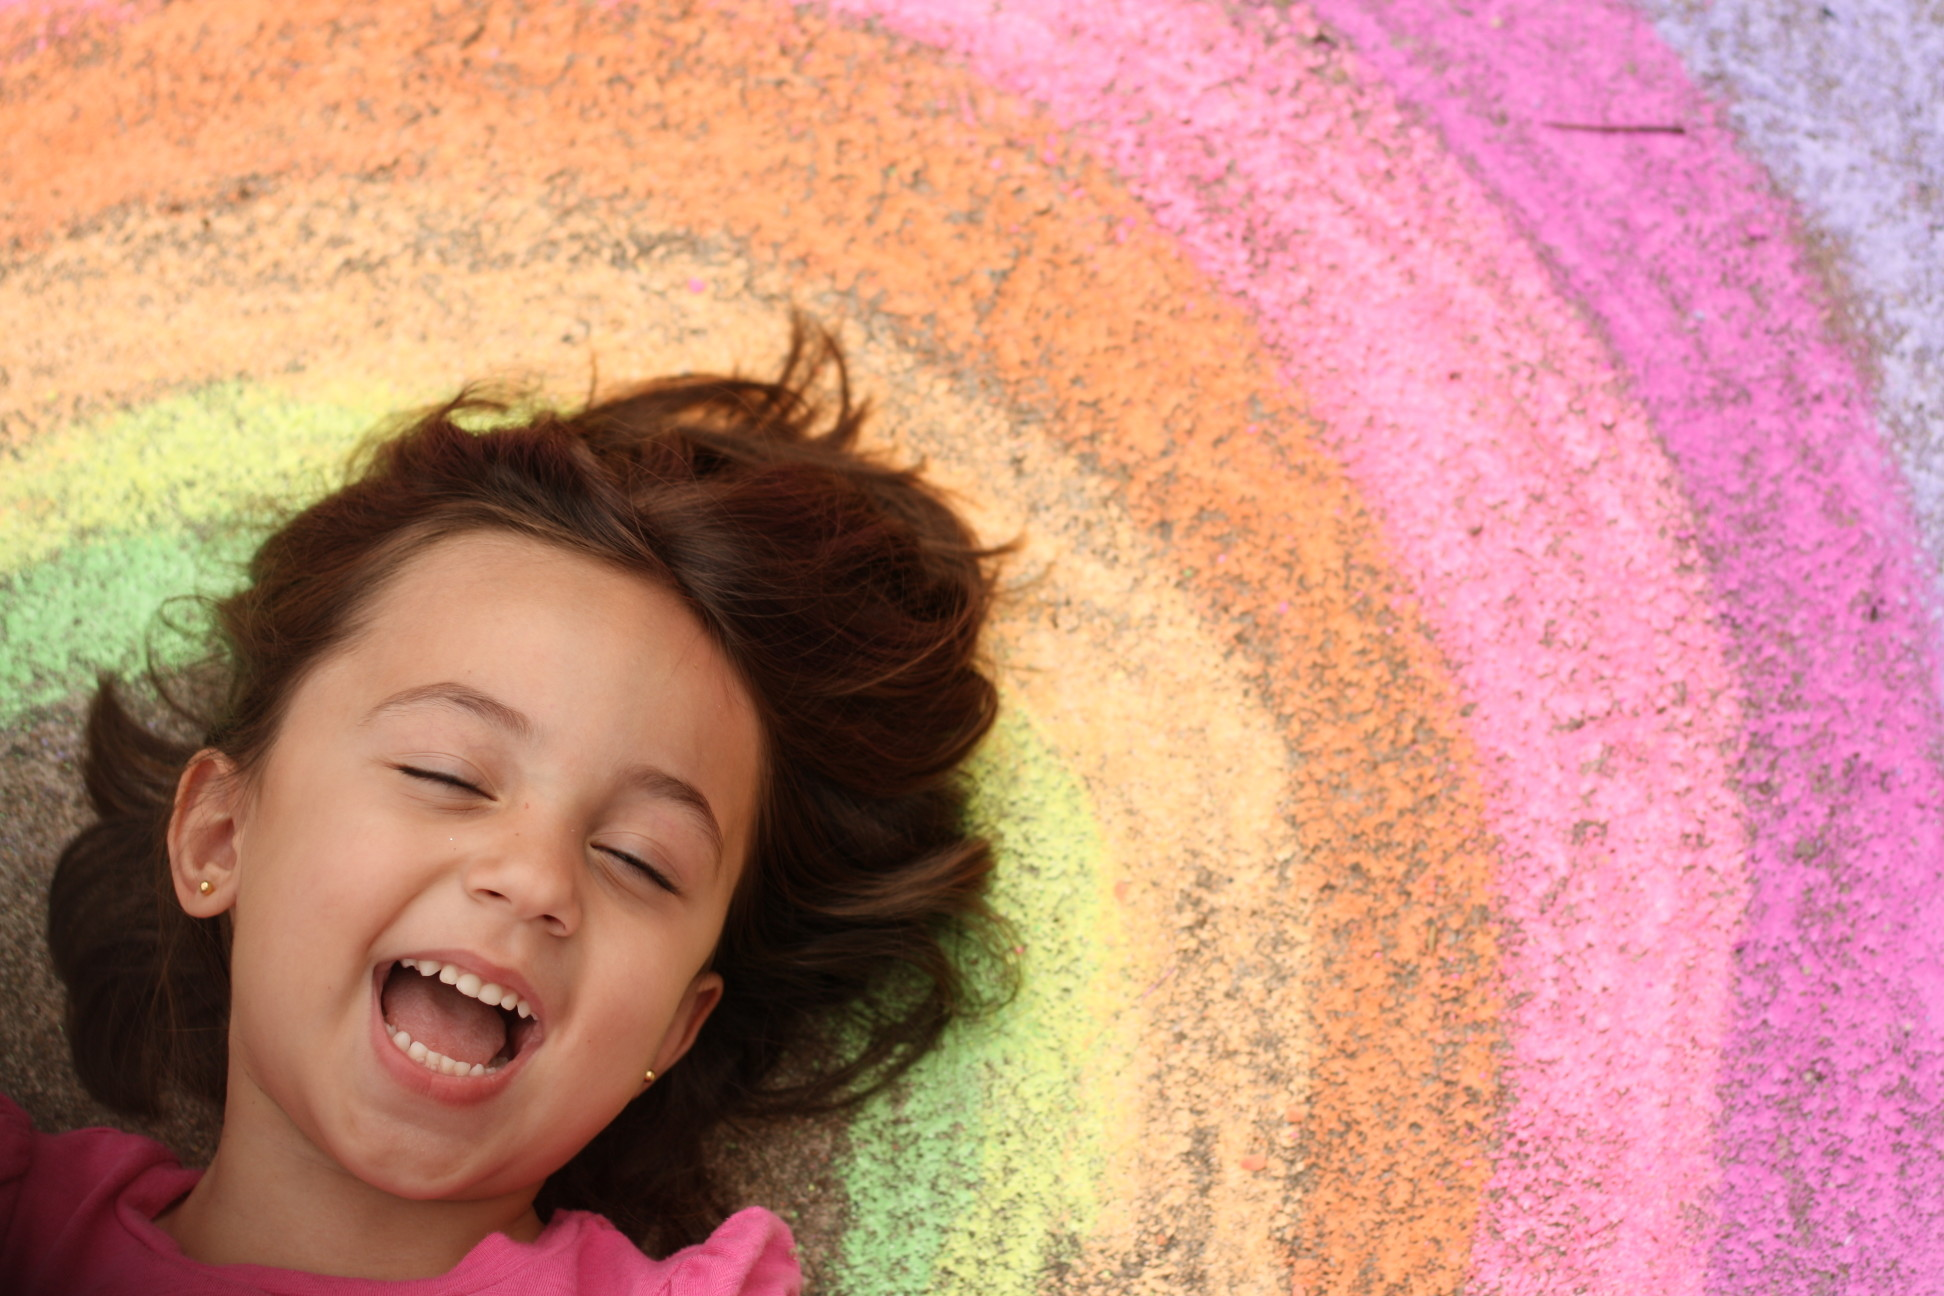 happy-girl-and-chalk-rainbow_t20_lWrajw